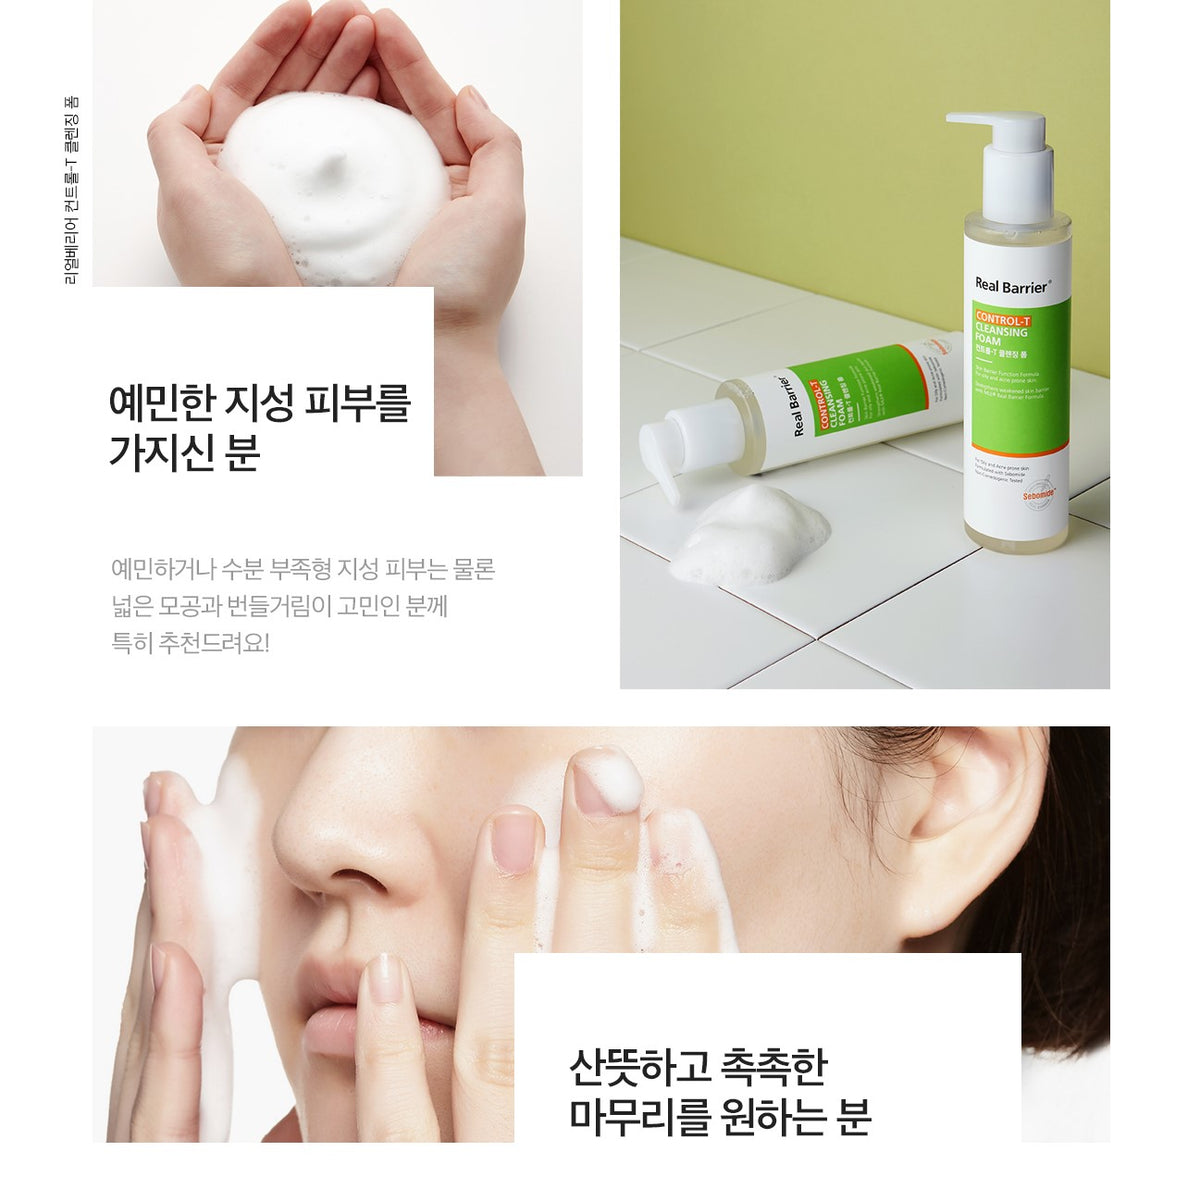 Real Barrier Control-T Cleansing Foam 190ml - Justrend.sg